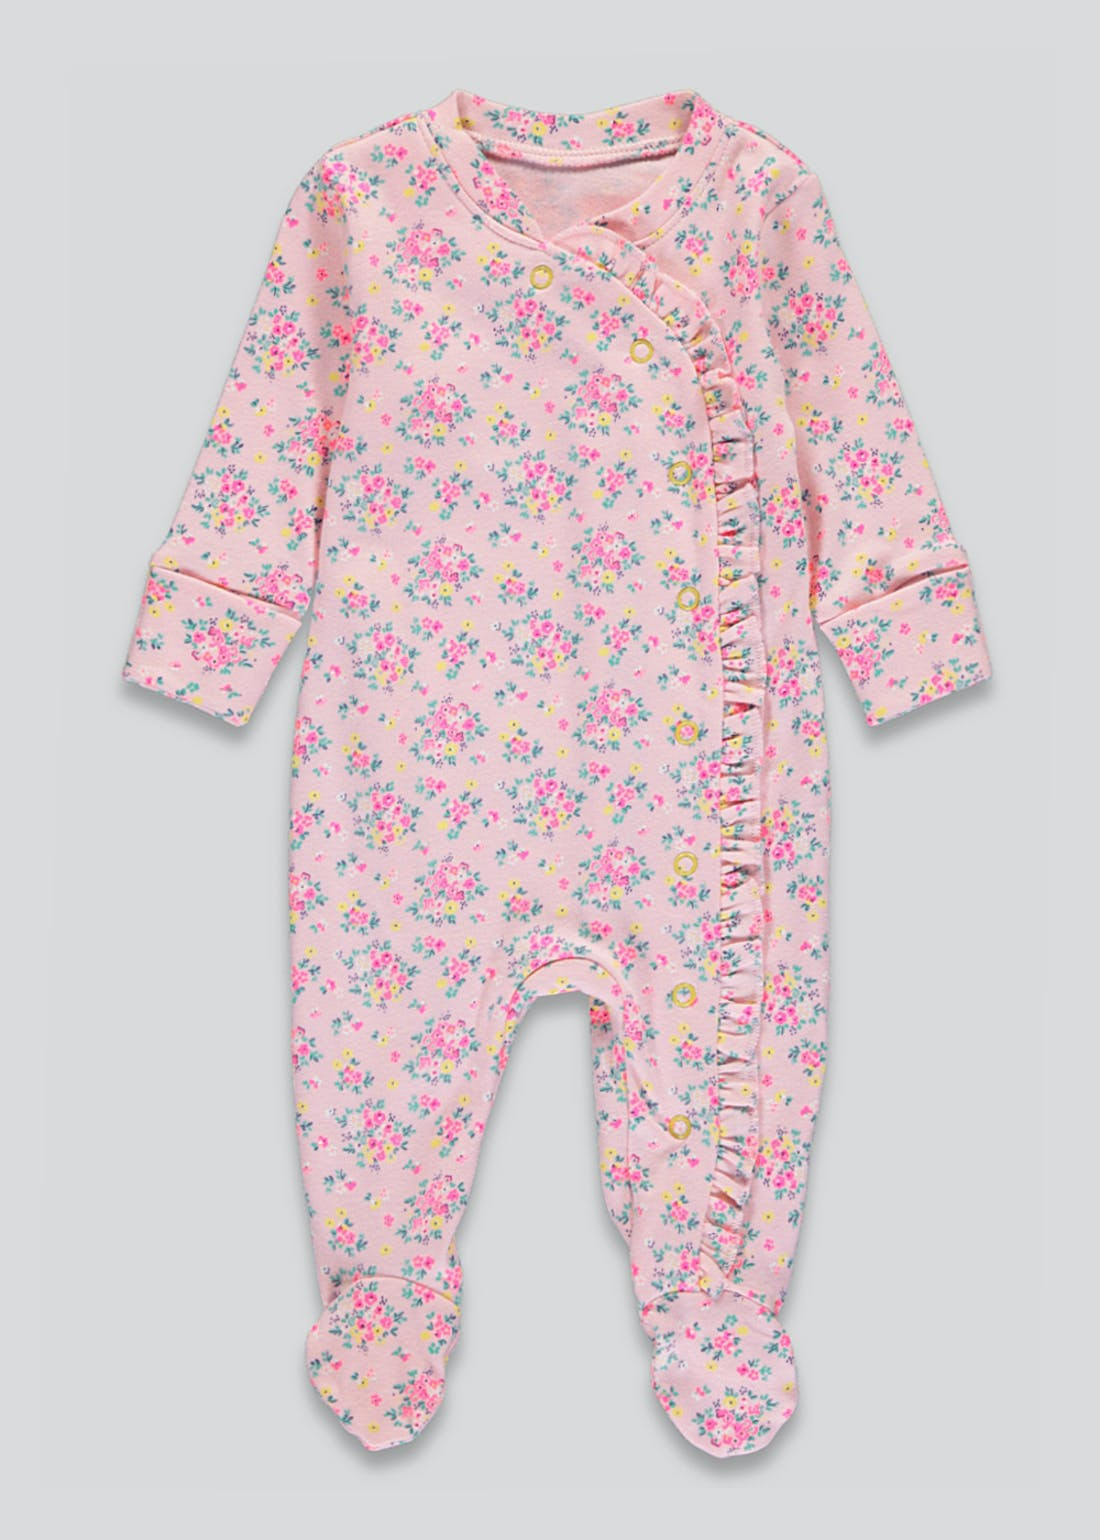 Girls Floral Frill Baby Grow (Tiny Baby-9mths)